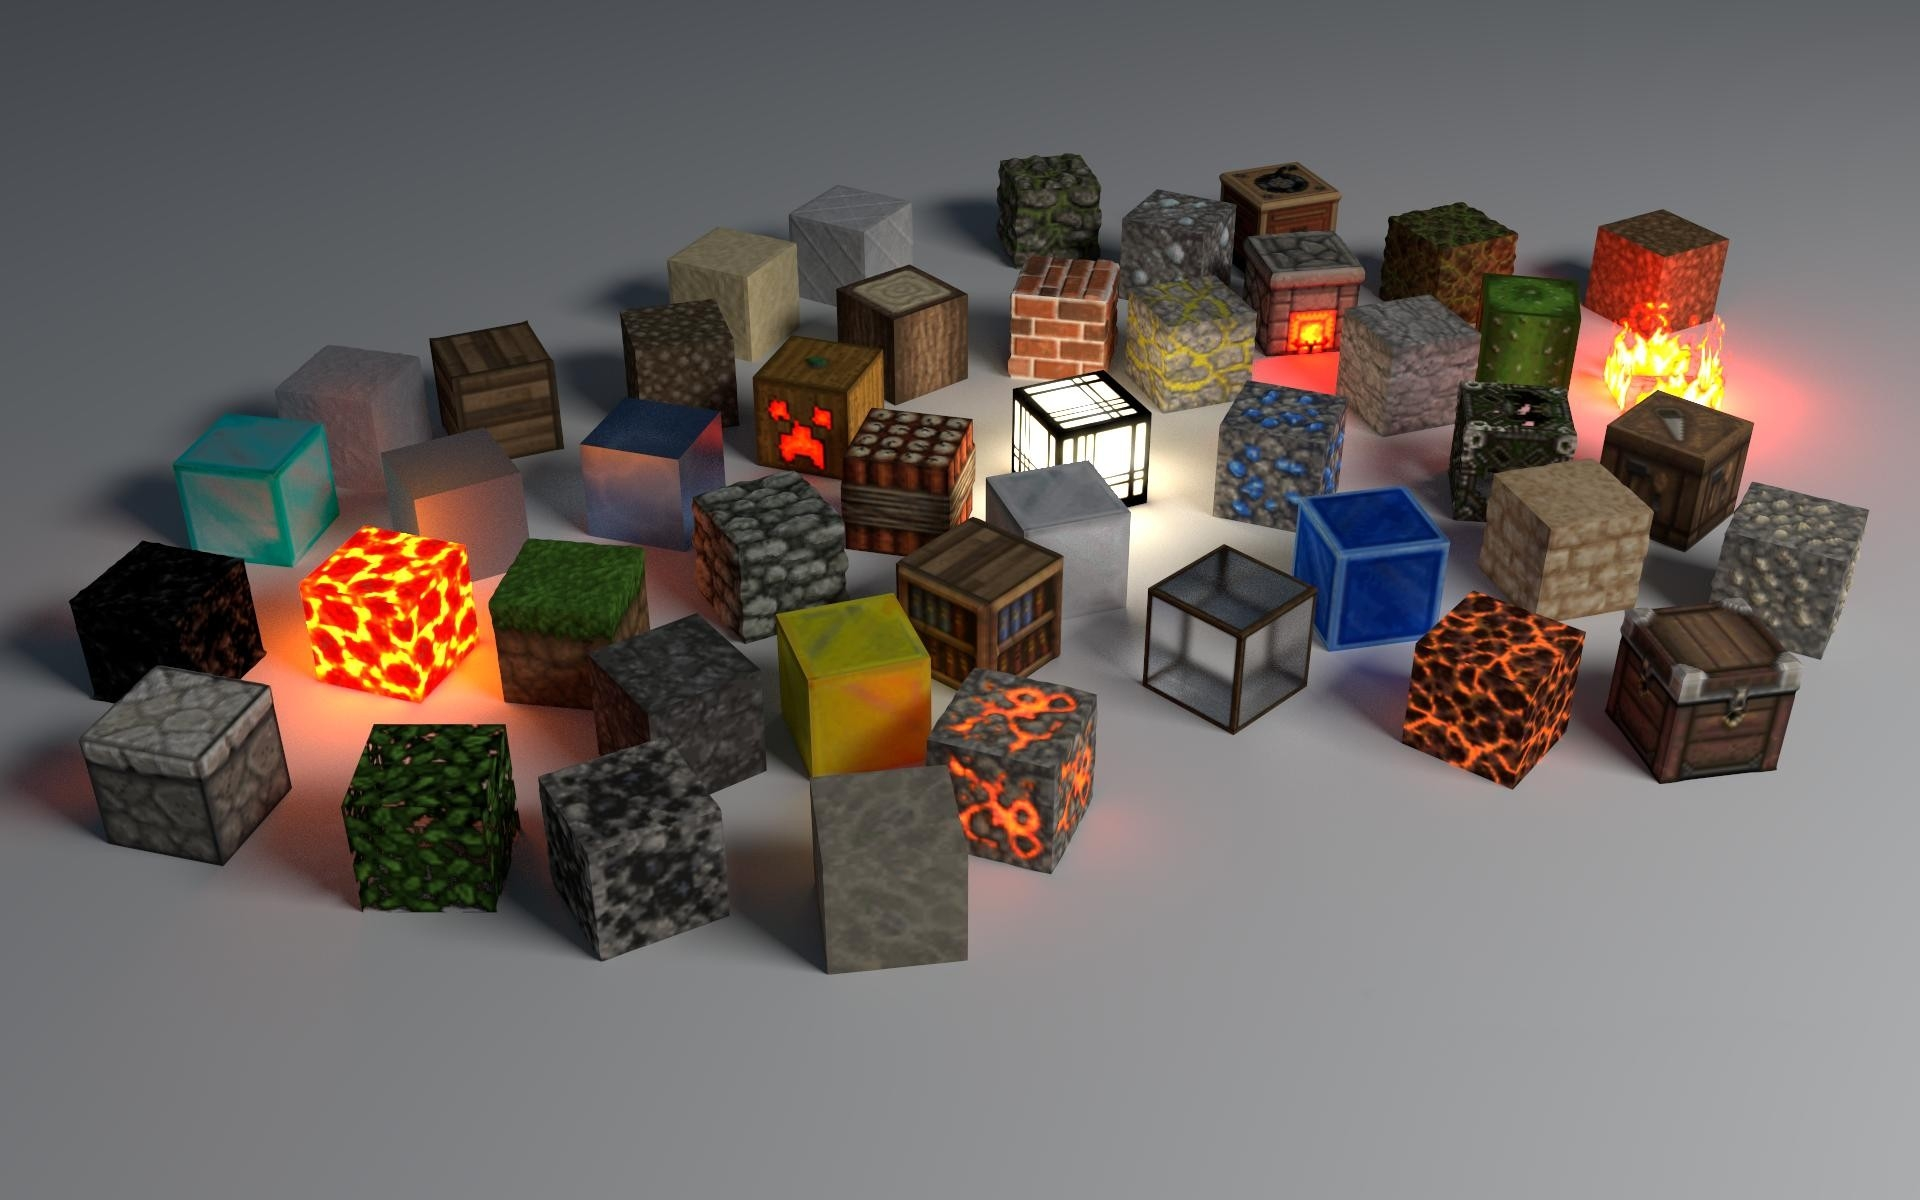 Wallpaper Cubes, Shape, Glow, Background, hd walepaper, free wallpaper